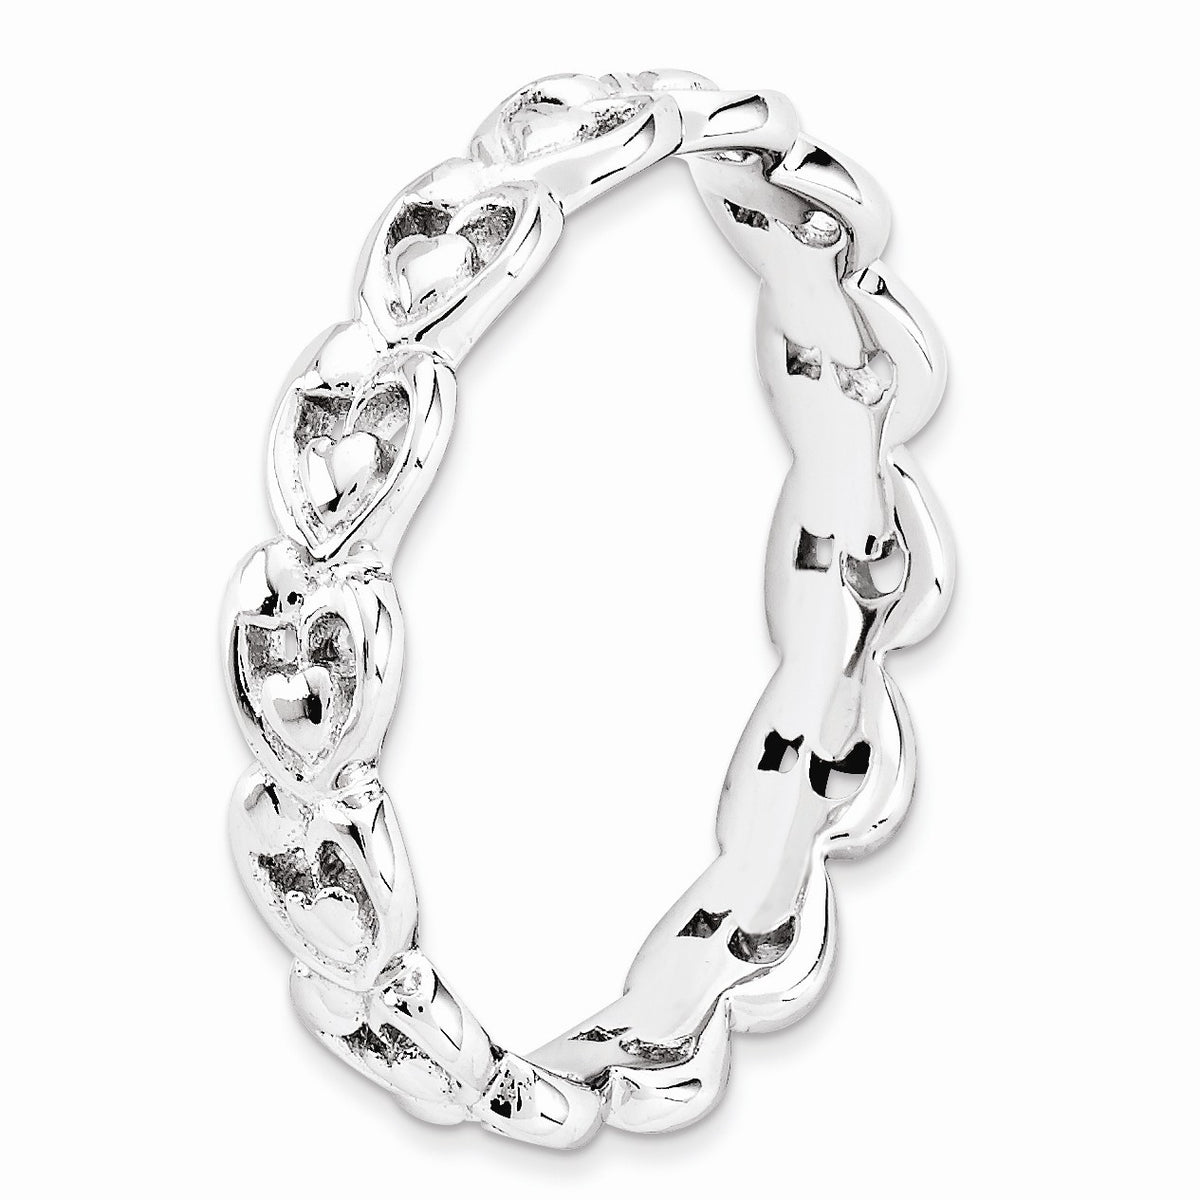 Alternate view of the Rhodium Plated Sterling Silver Stackable 4.5mm Heart Band by The Black Bow Jewelry Co.